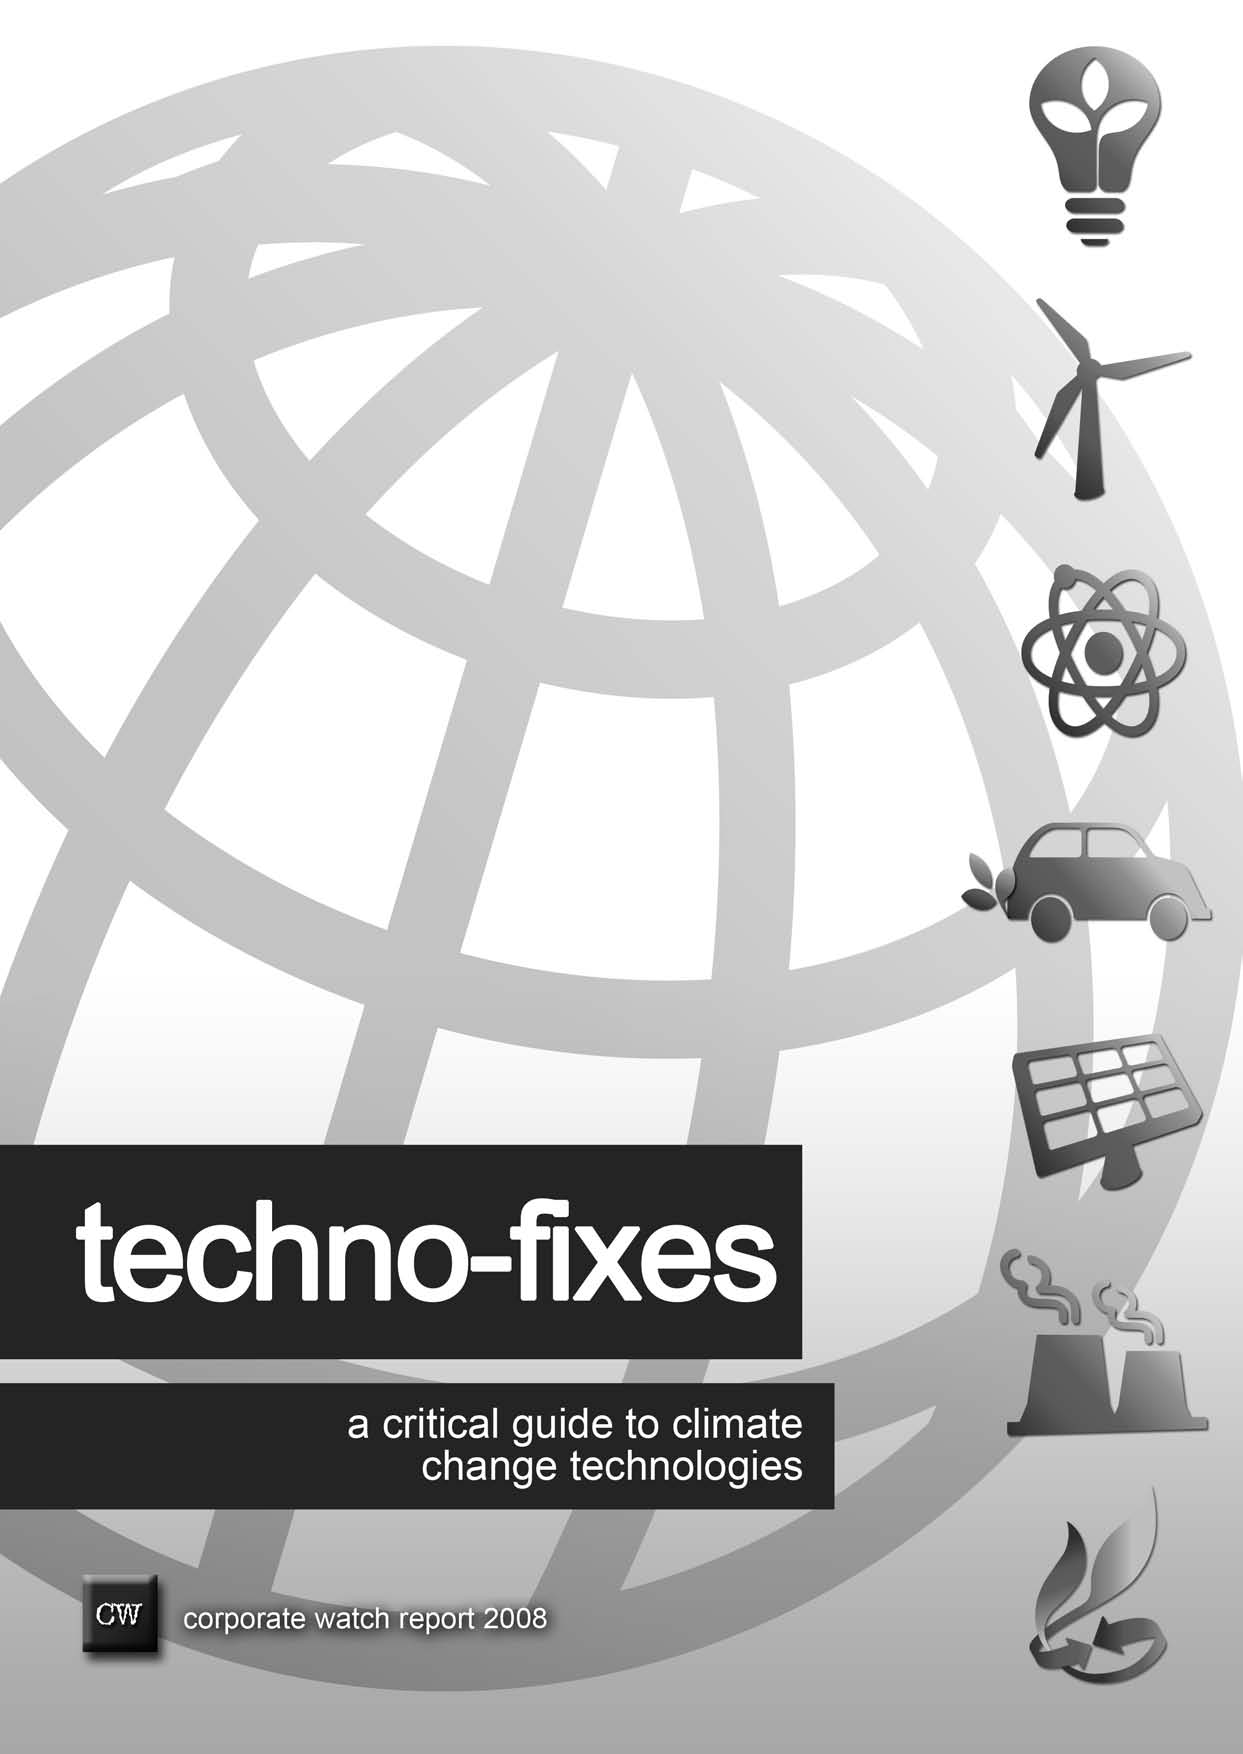 https://corporatewatch.org/wp-content/uploads/2017/09/Technofixes-front-cover.jpg